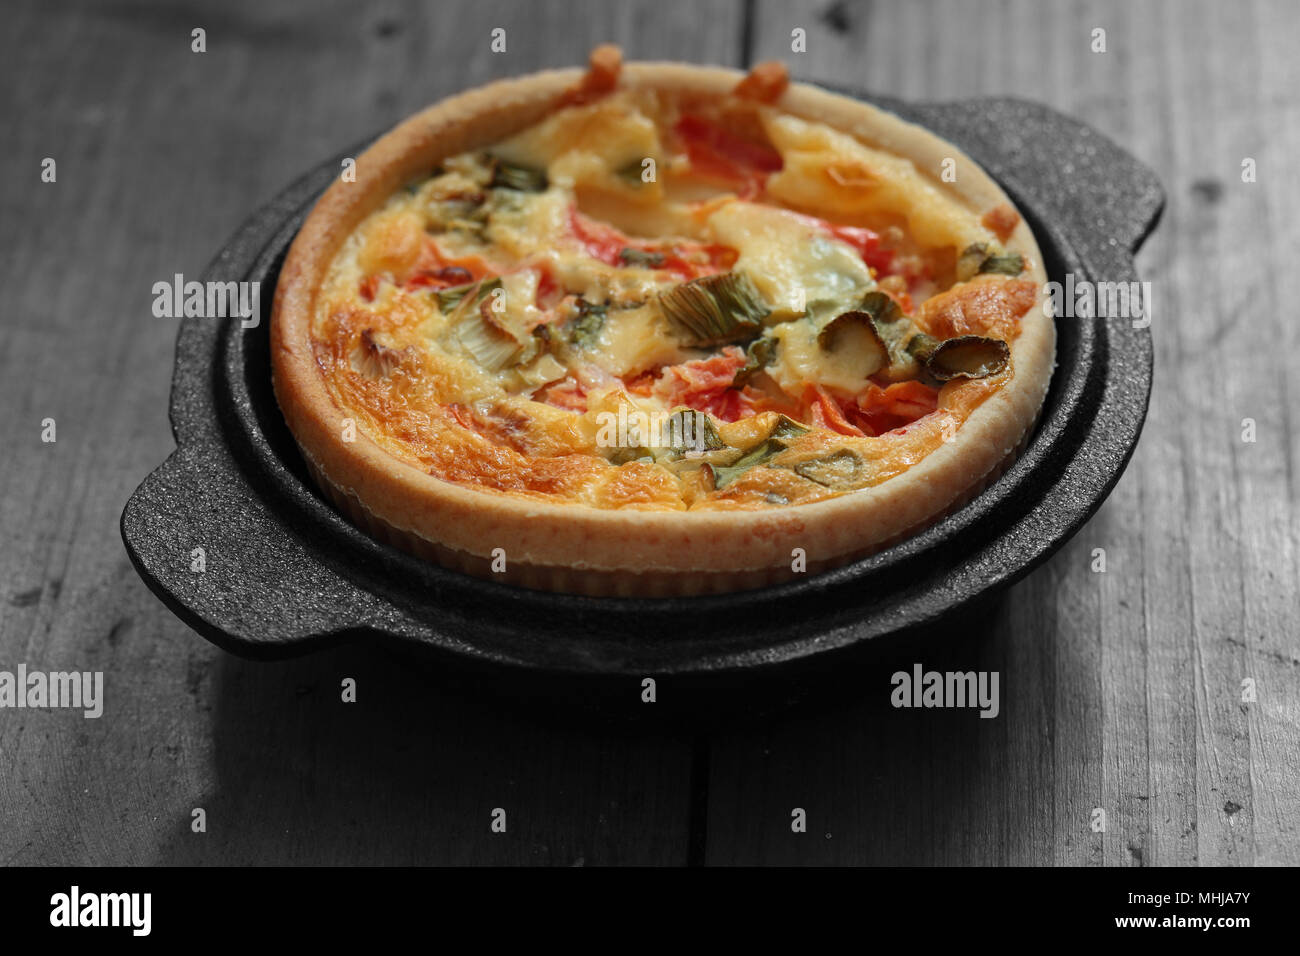 Tomato and spring onion quiche in a cast iron pot dish on a wood background with selective color - Stock Image